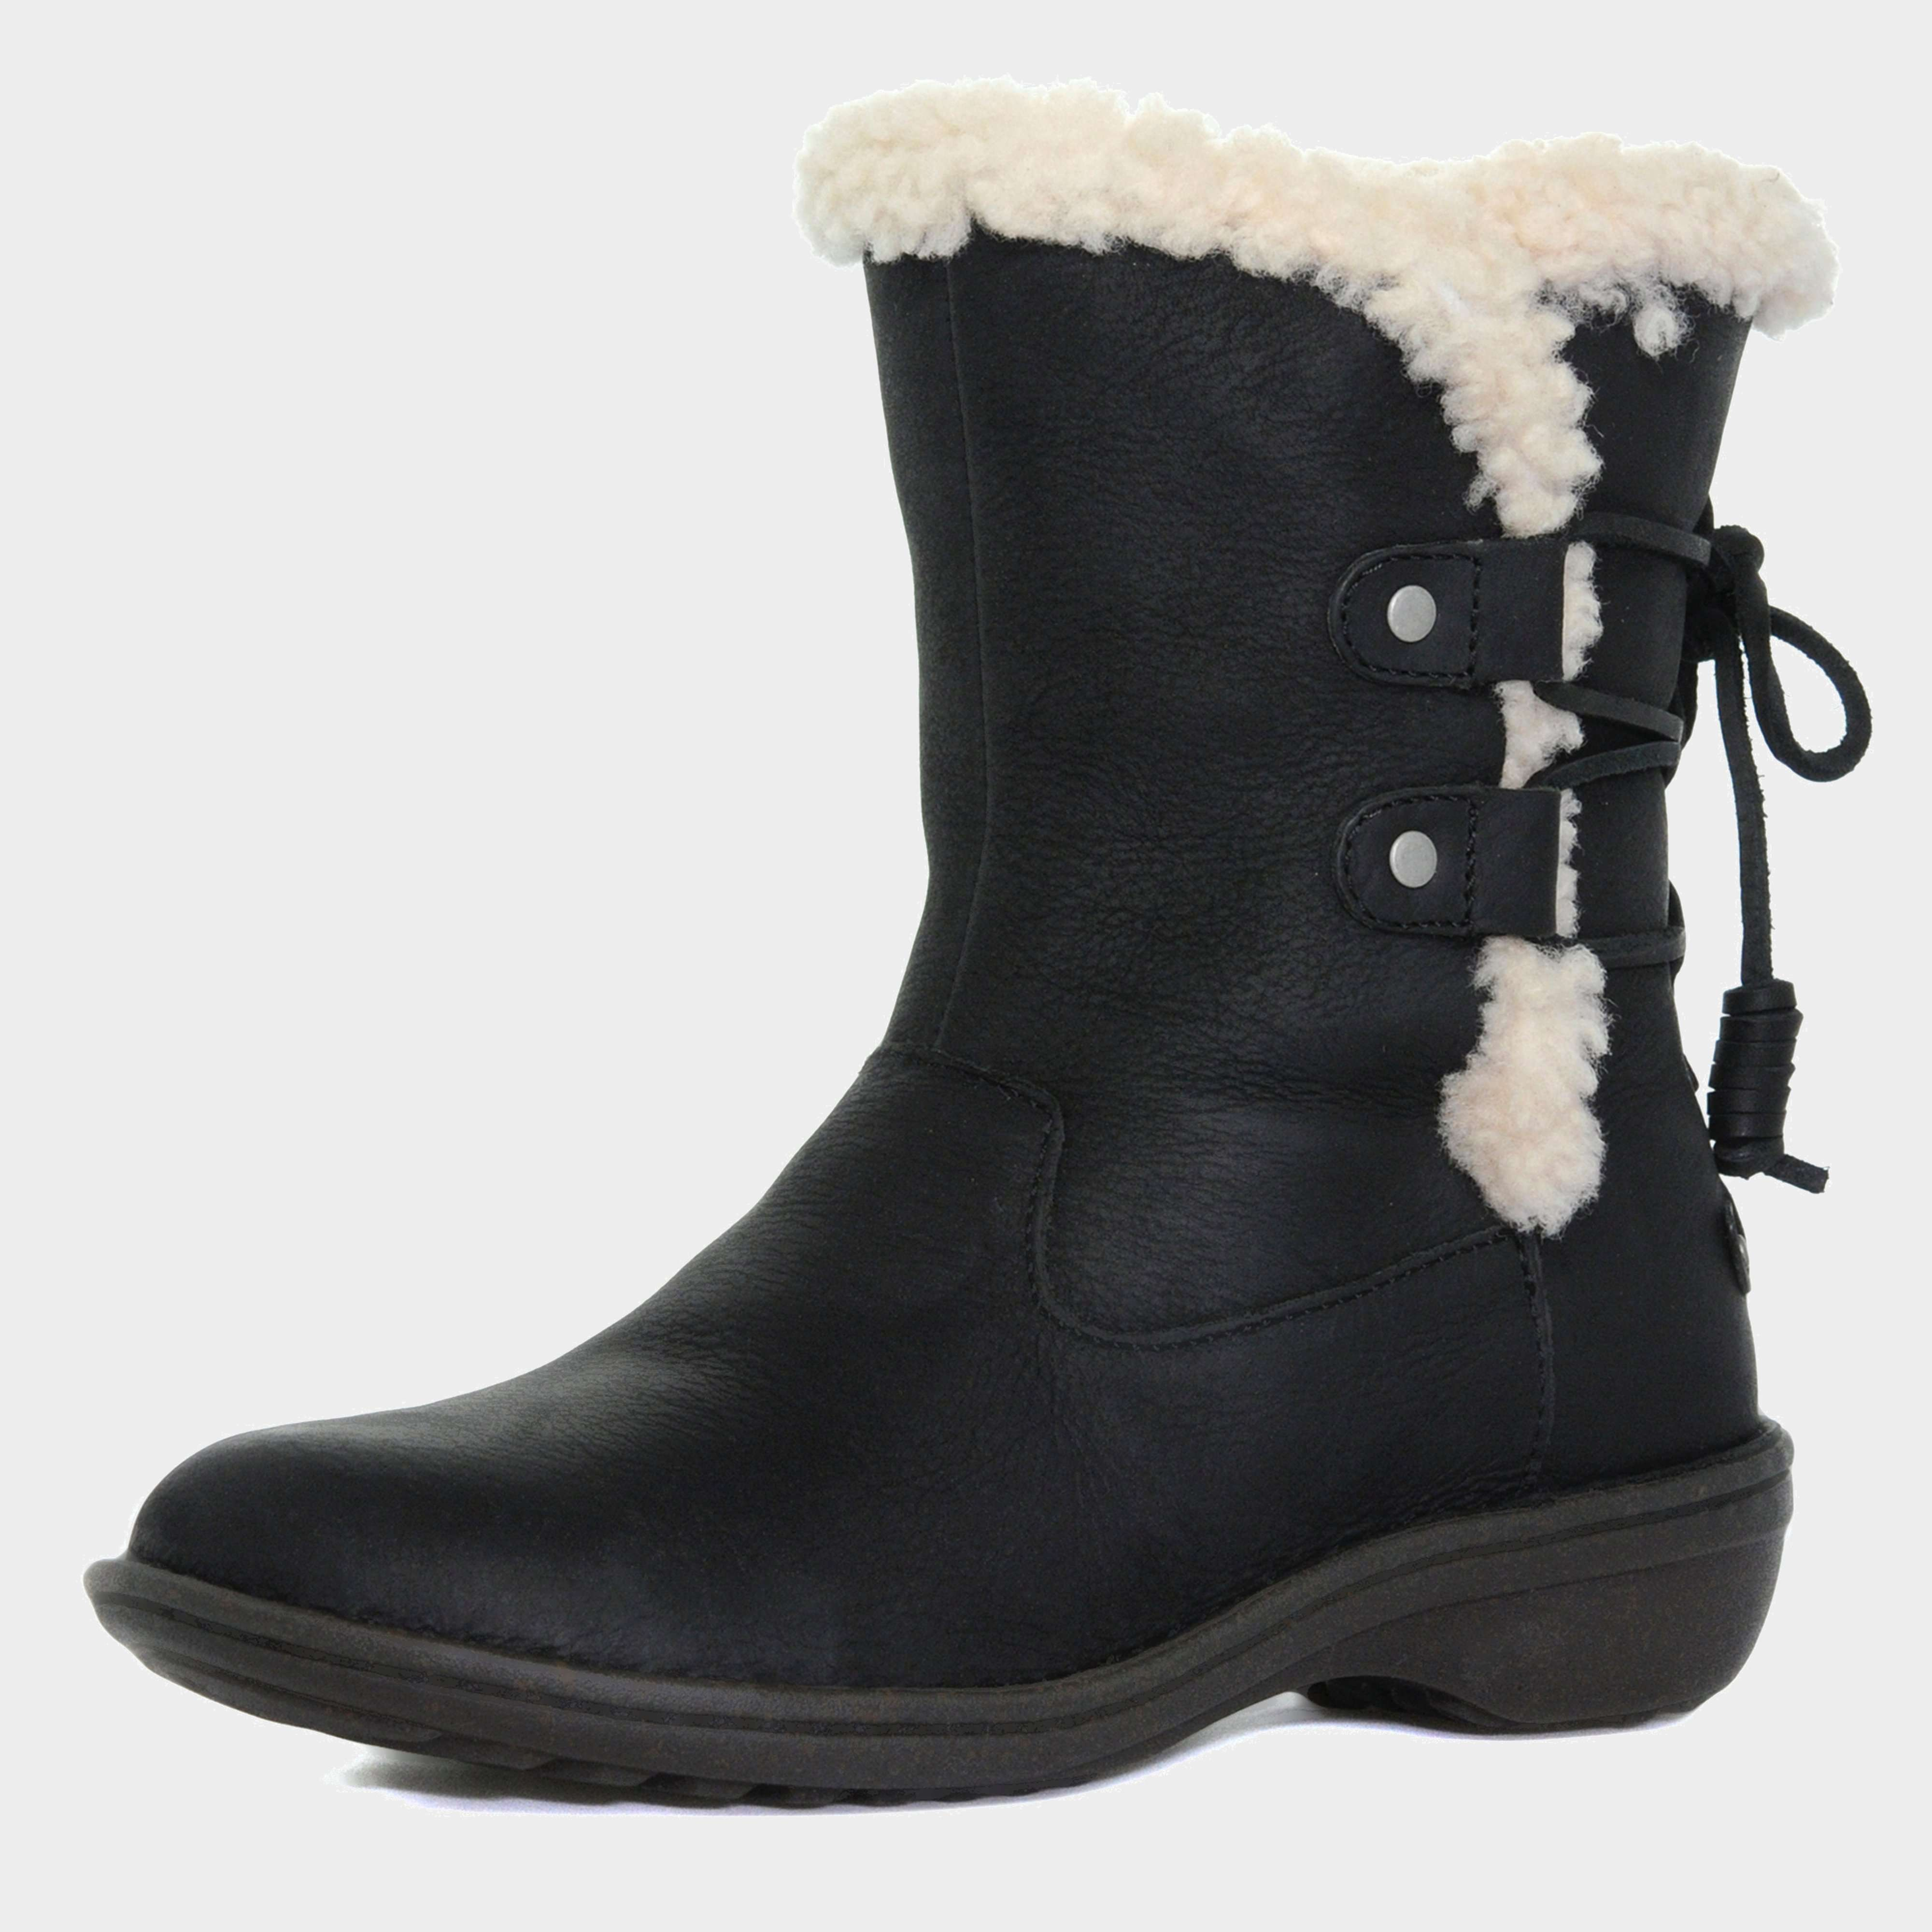 UGG Women's Akadia Leather Winter Boot